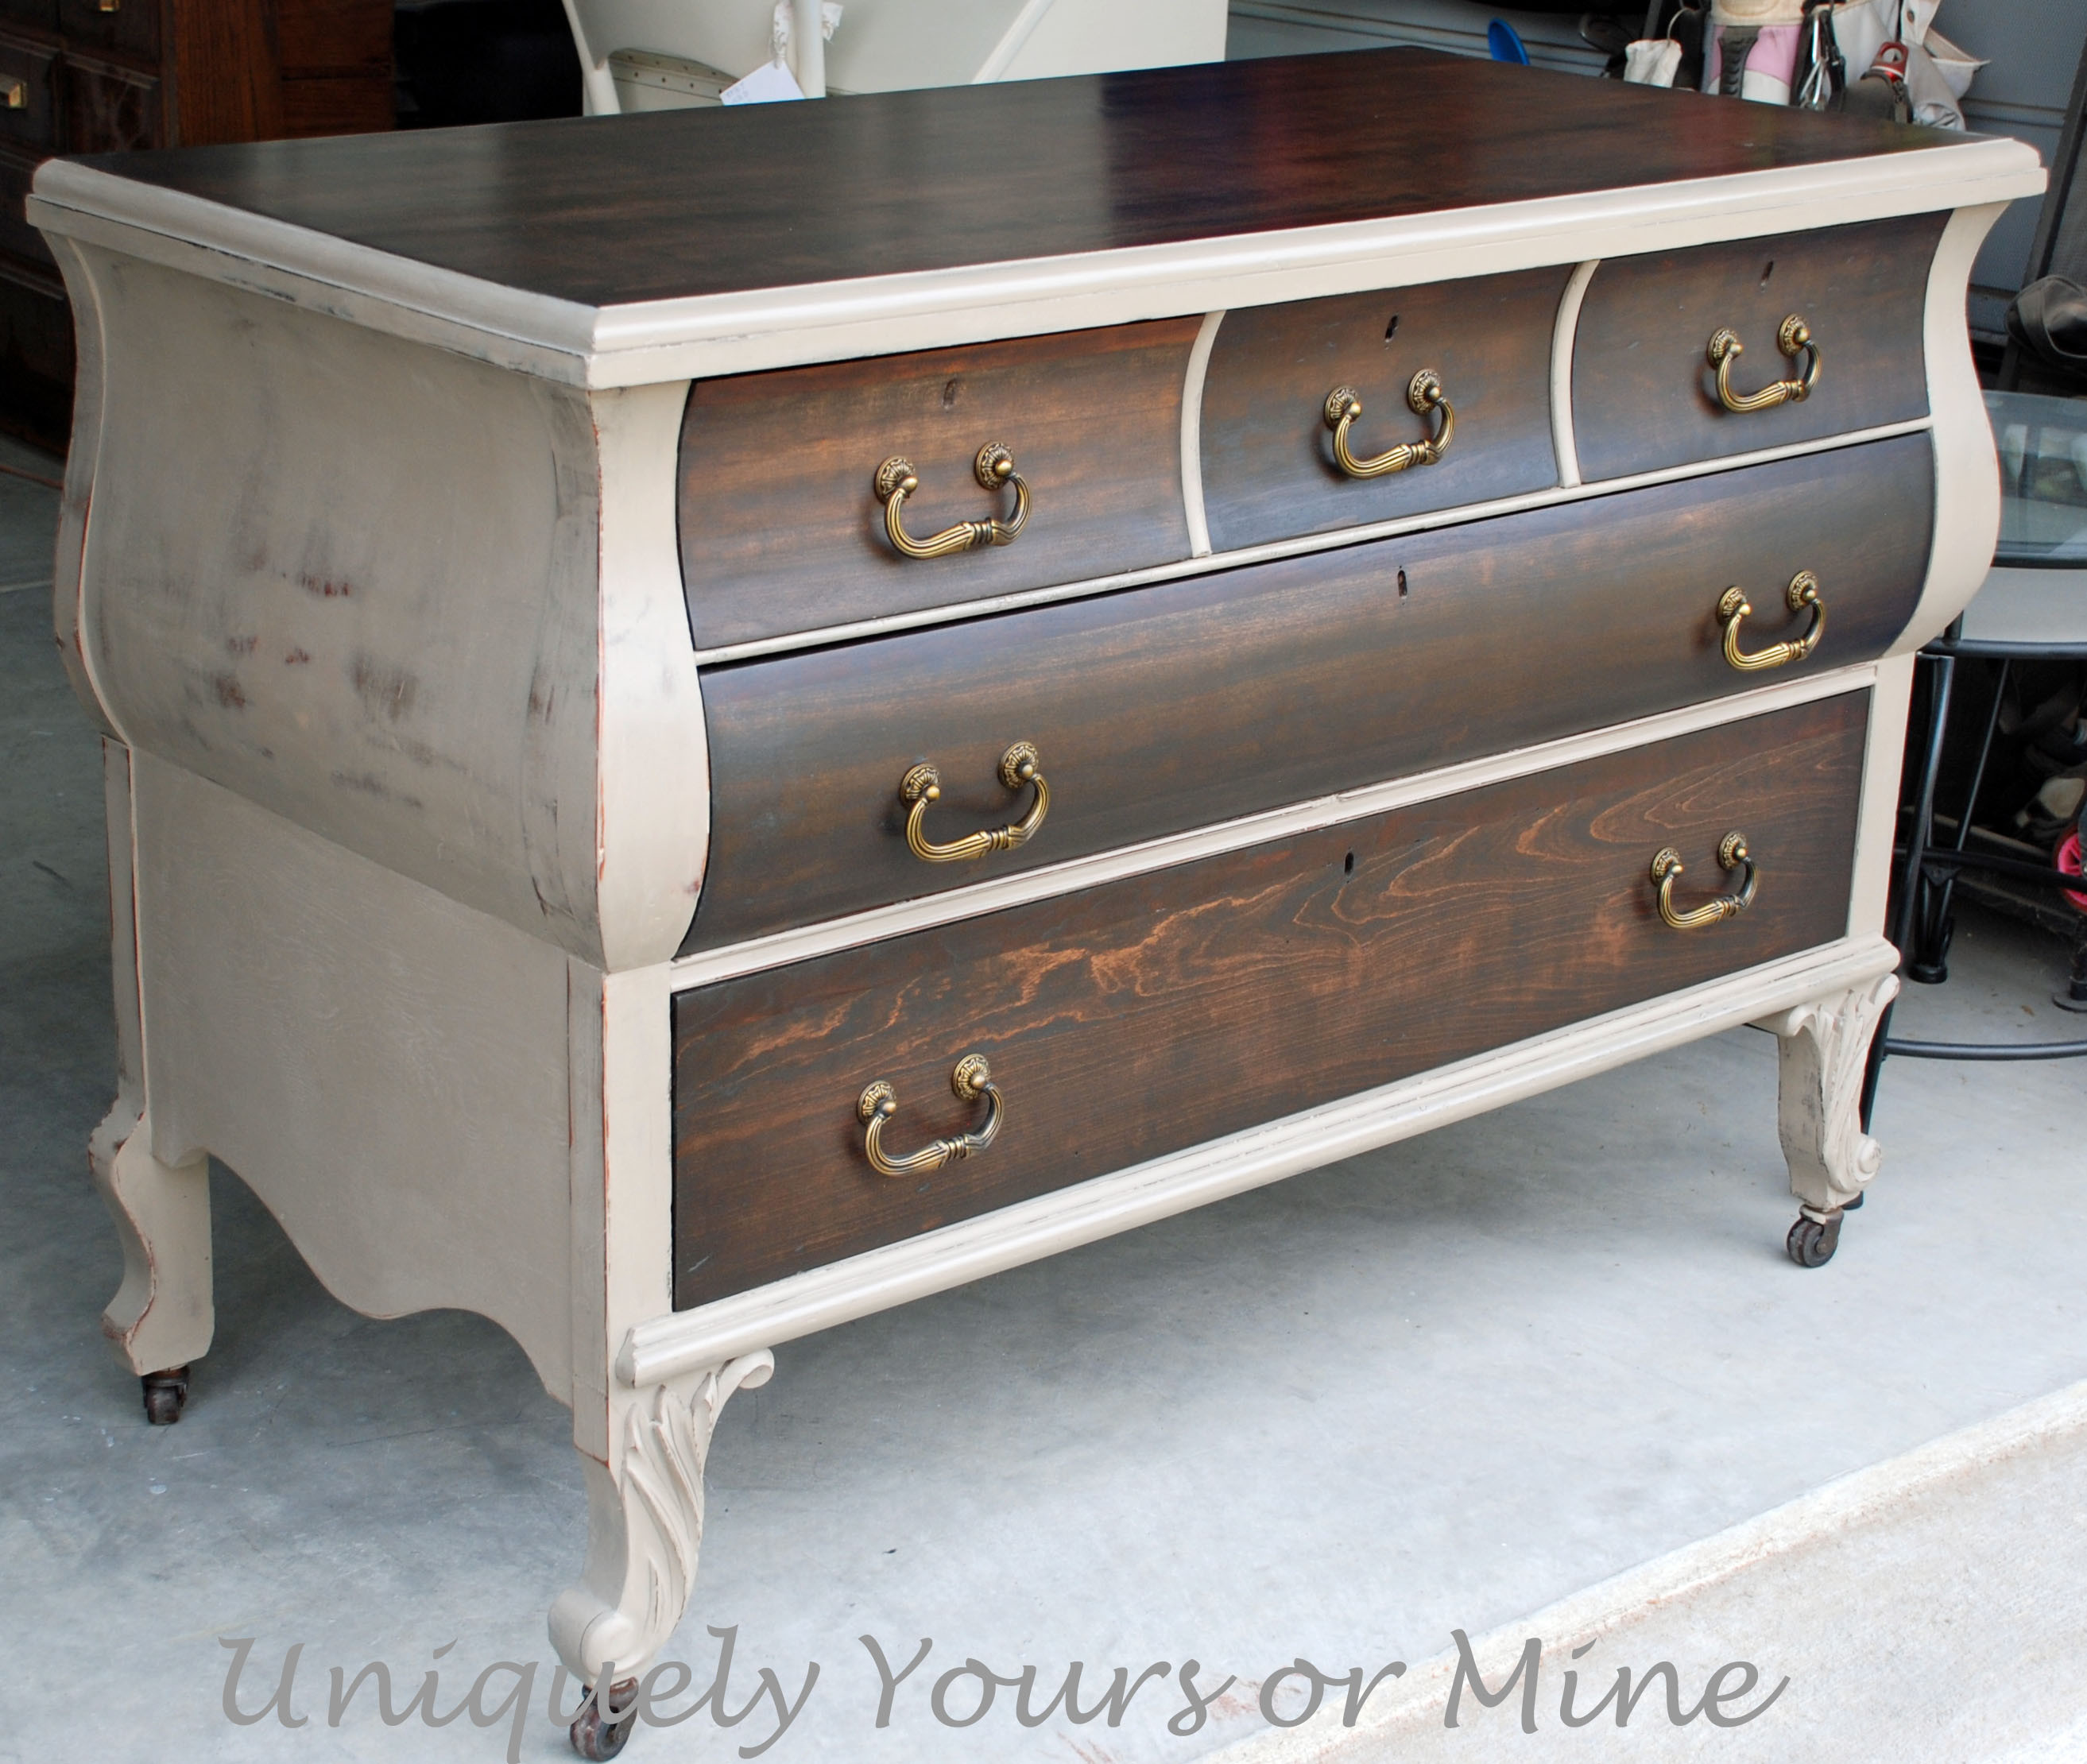 Best ideas about Painted Furniture Ideas . Save or Pin Beautiful Wood Finish and A plimentary Paint for Contrast Now.